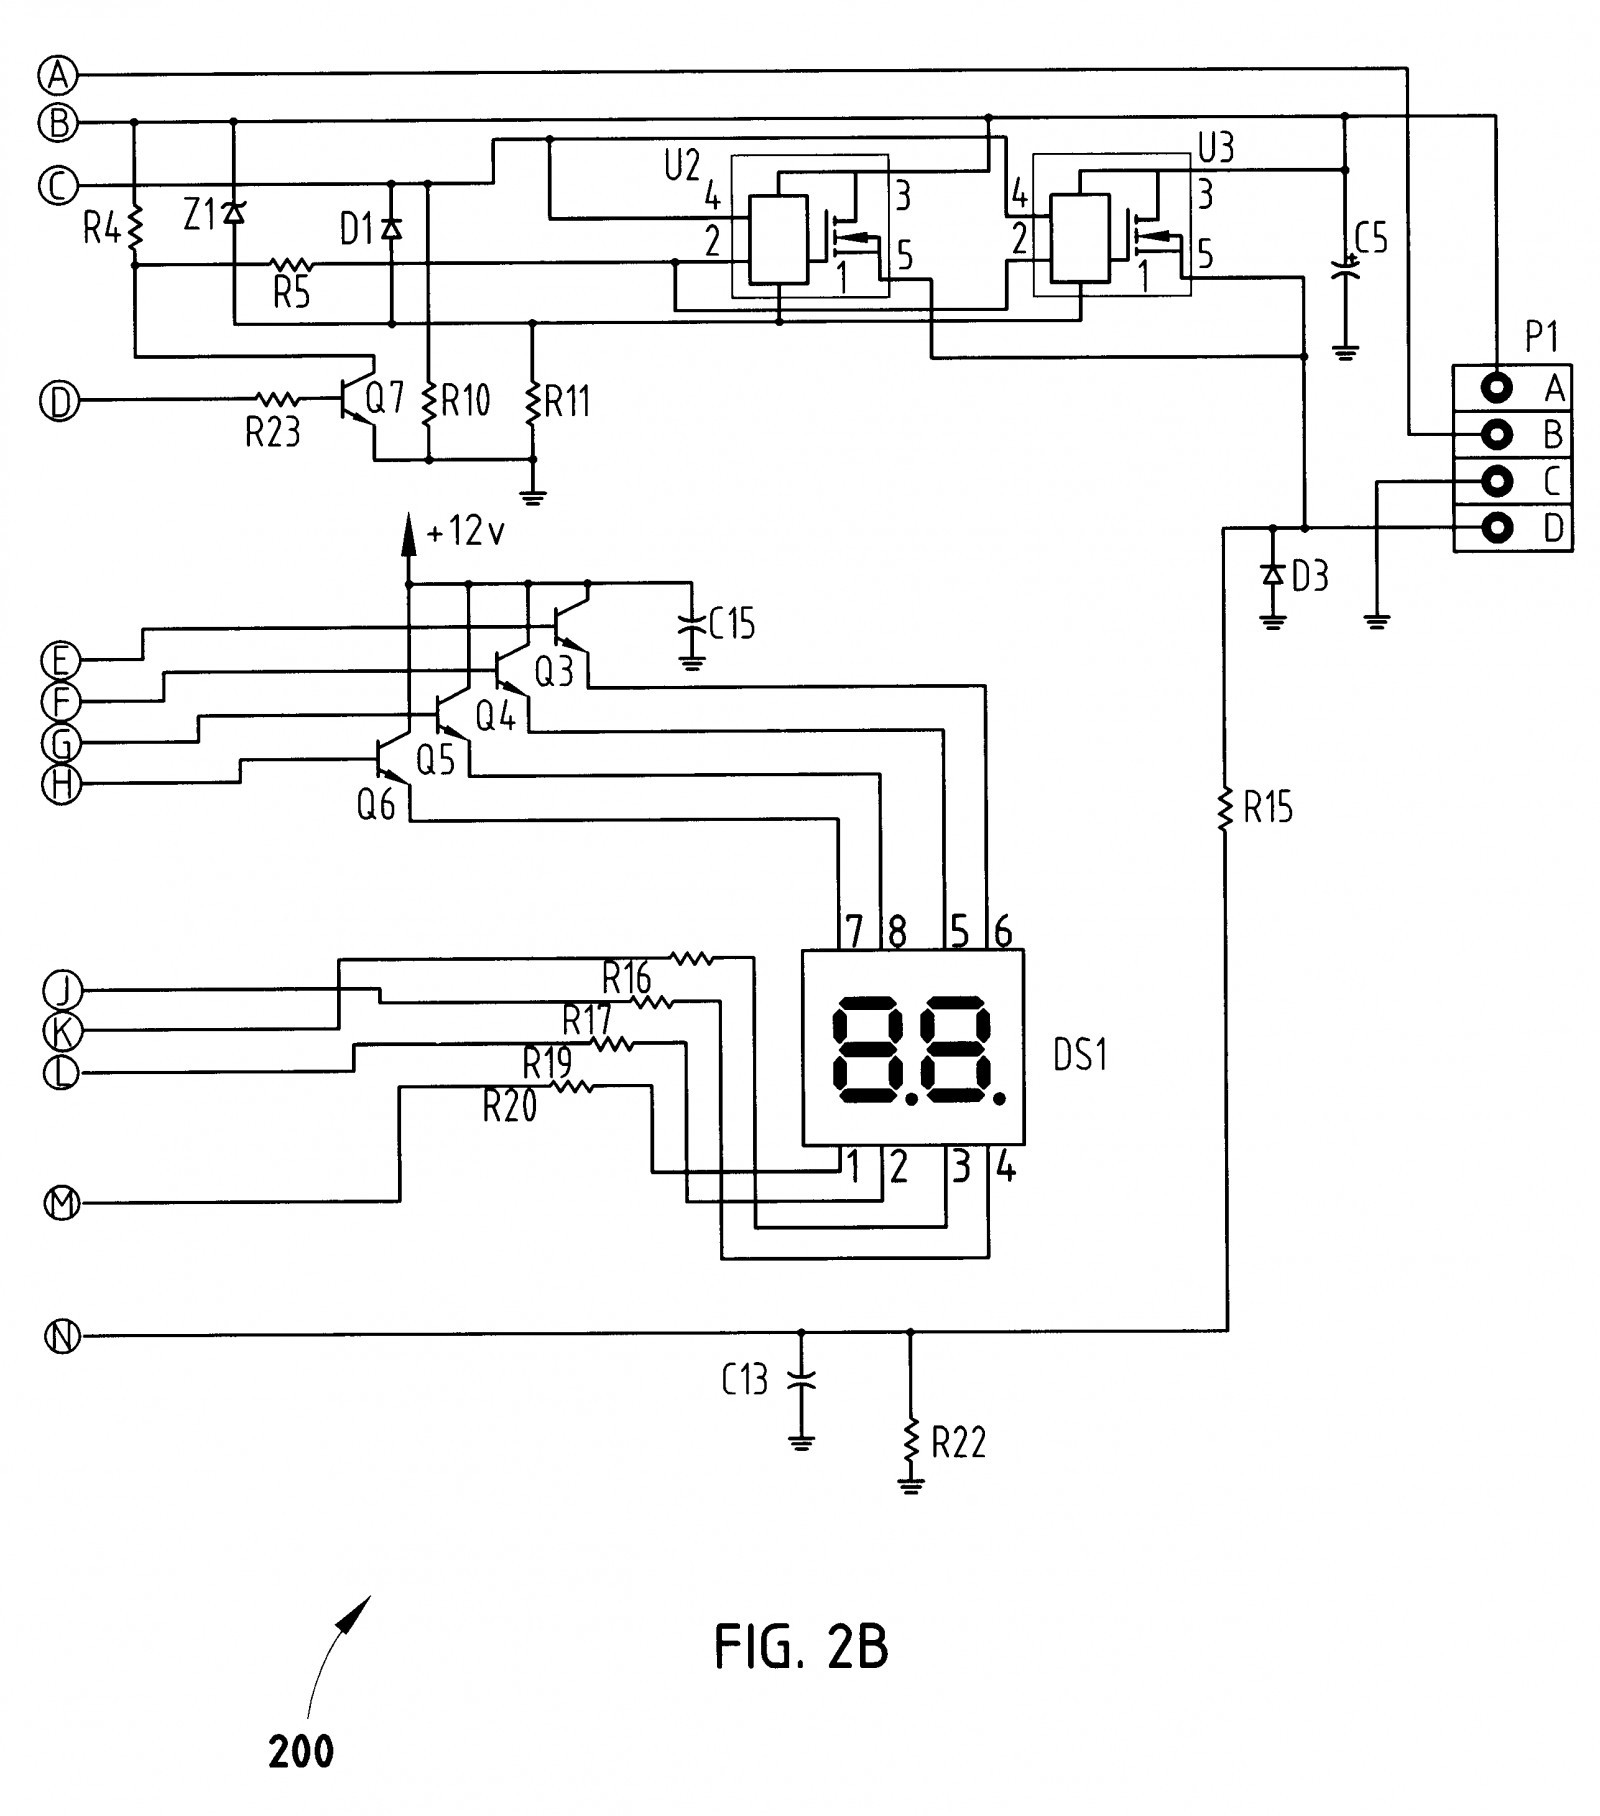 curt discovery brake controller wiring diagram Download-Hopkins Brake Controller Wiring Diagram Electrics Schematic For Curt Discovery Control 3 8-d